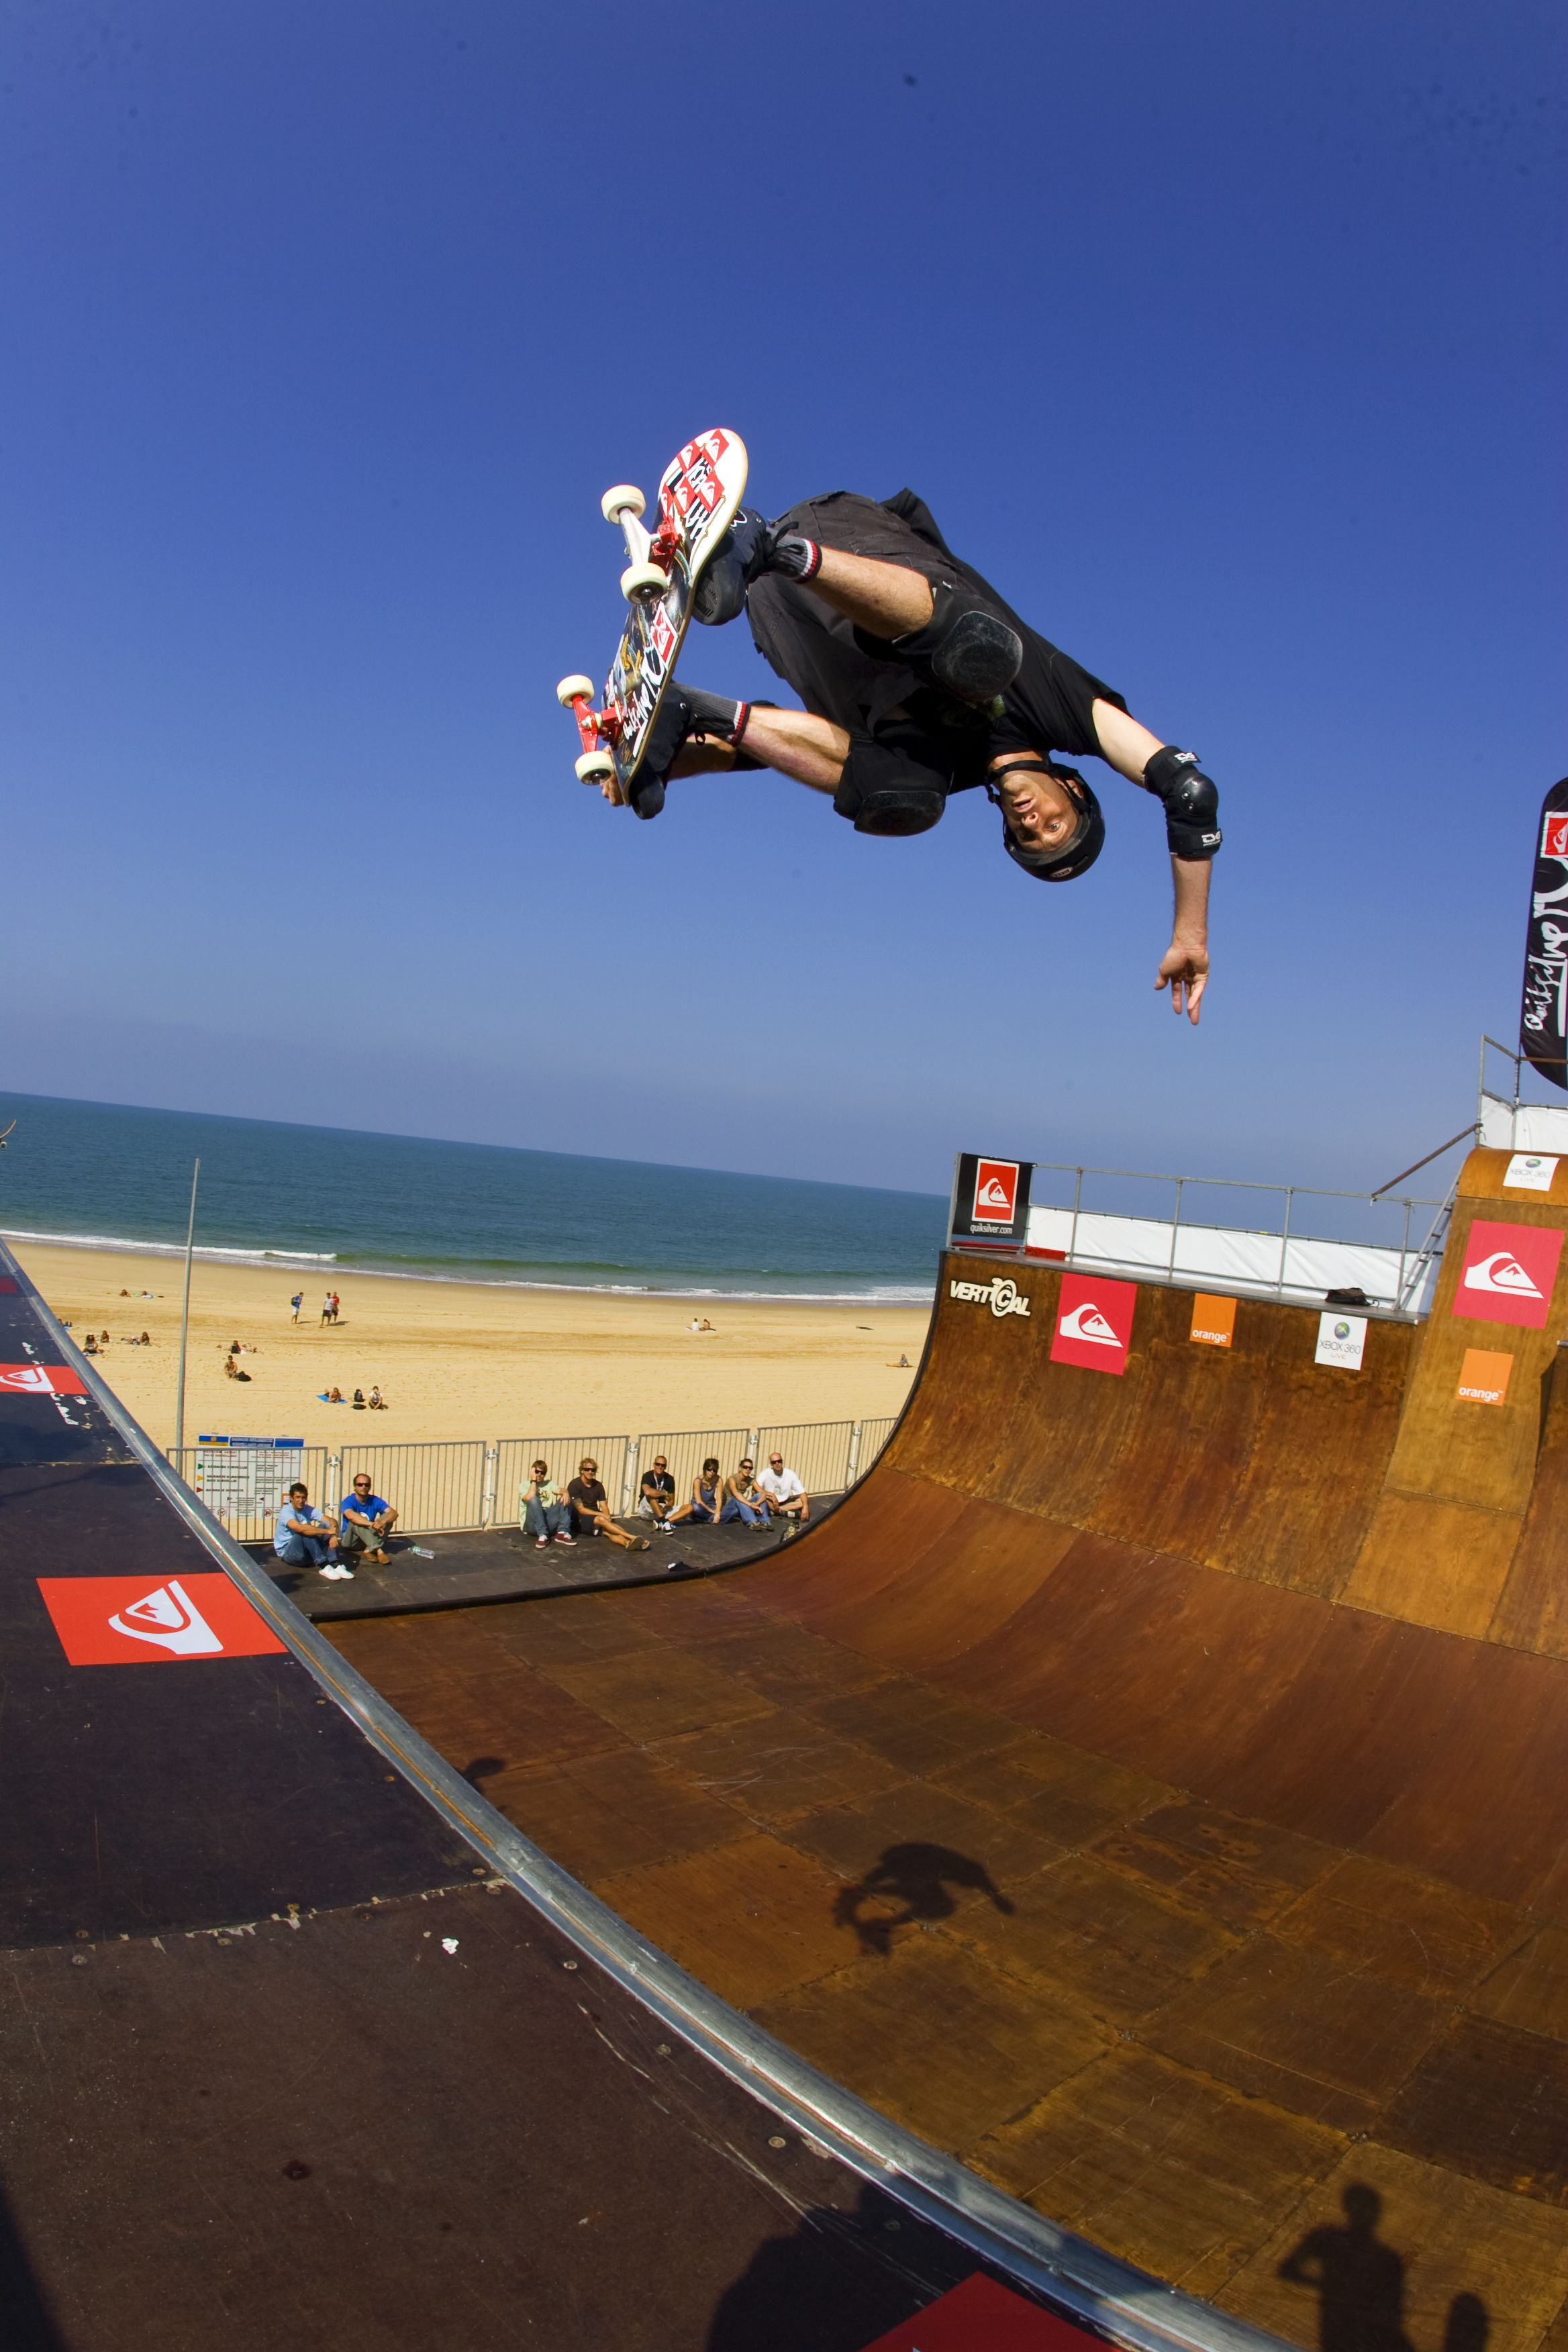 Tony Hawk Quiksilver contest skate // Indie Clothing